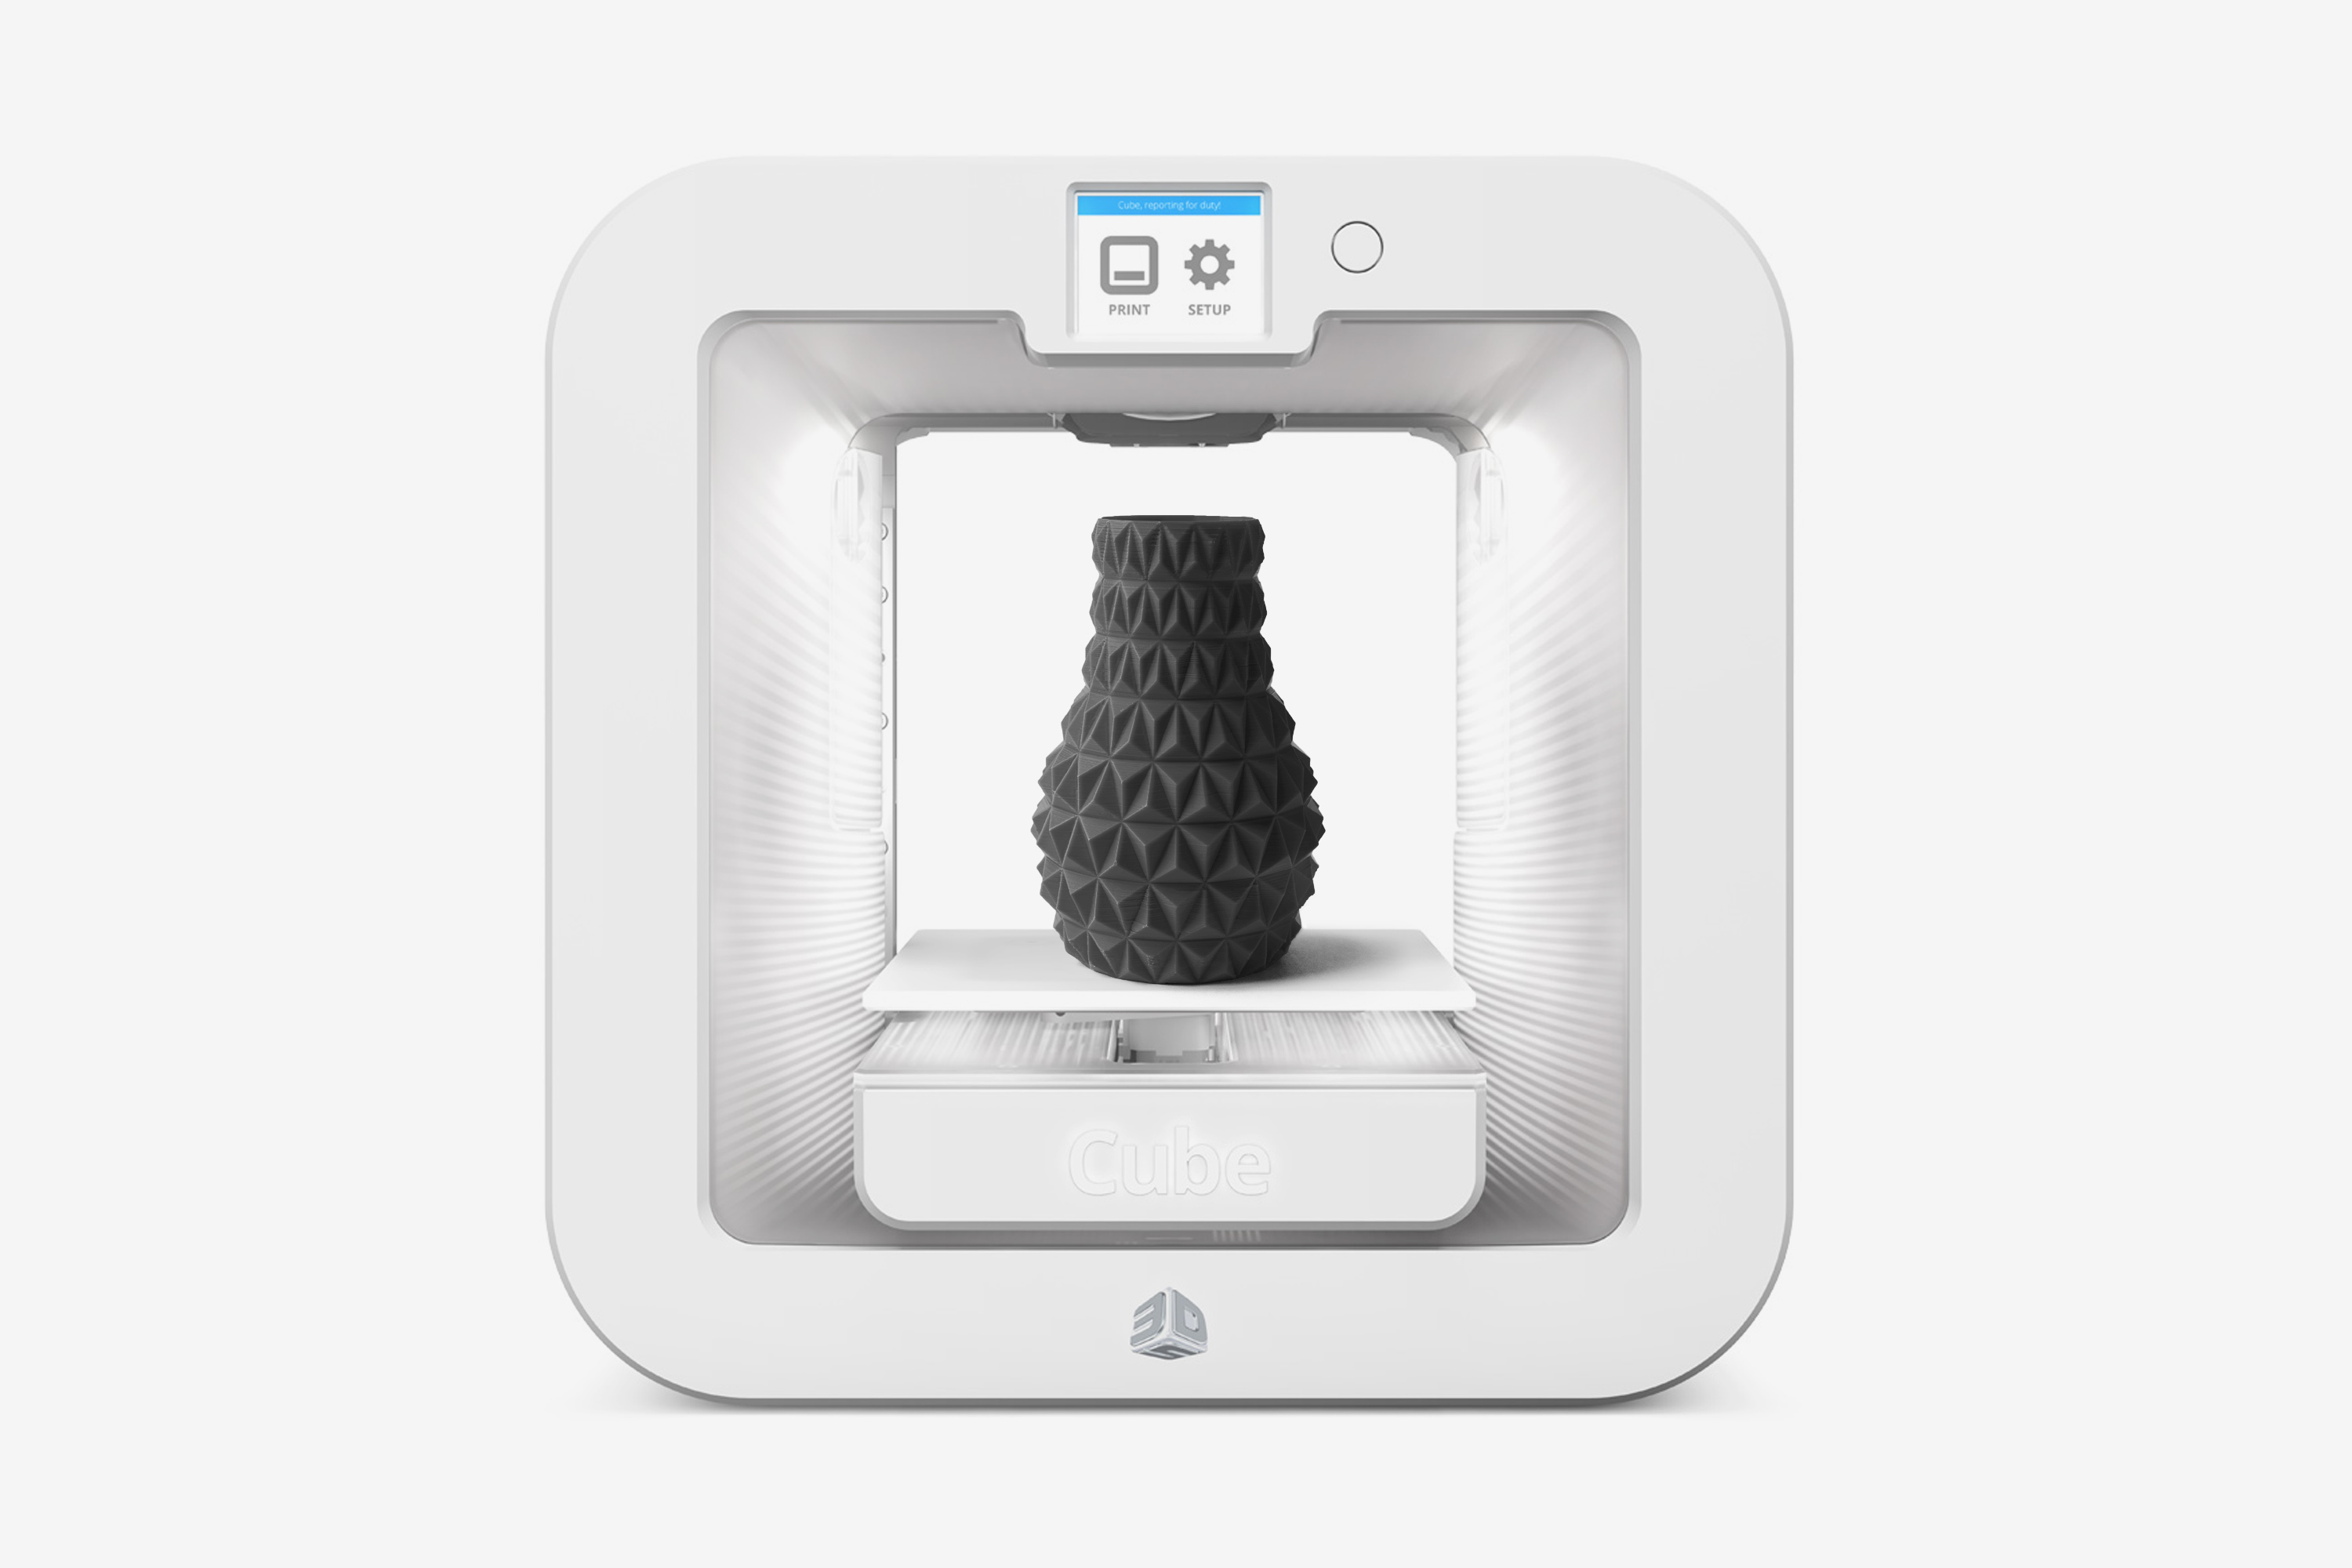 Faceted Vase in Cube 3D Printer, Design by Matthijs Kok for Cubify